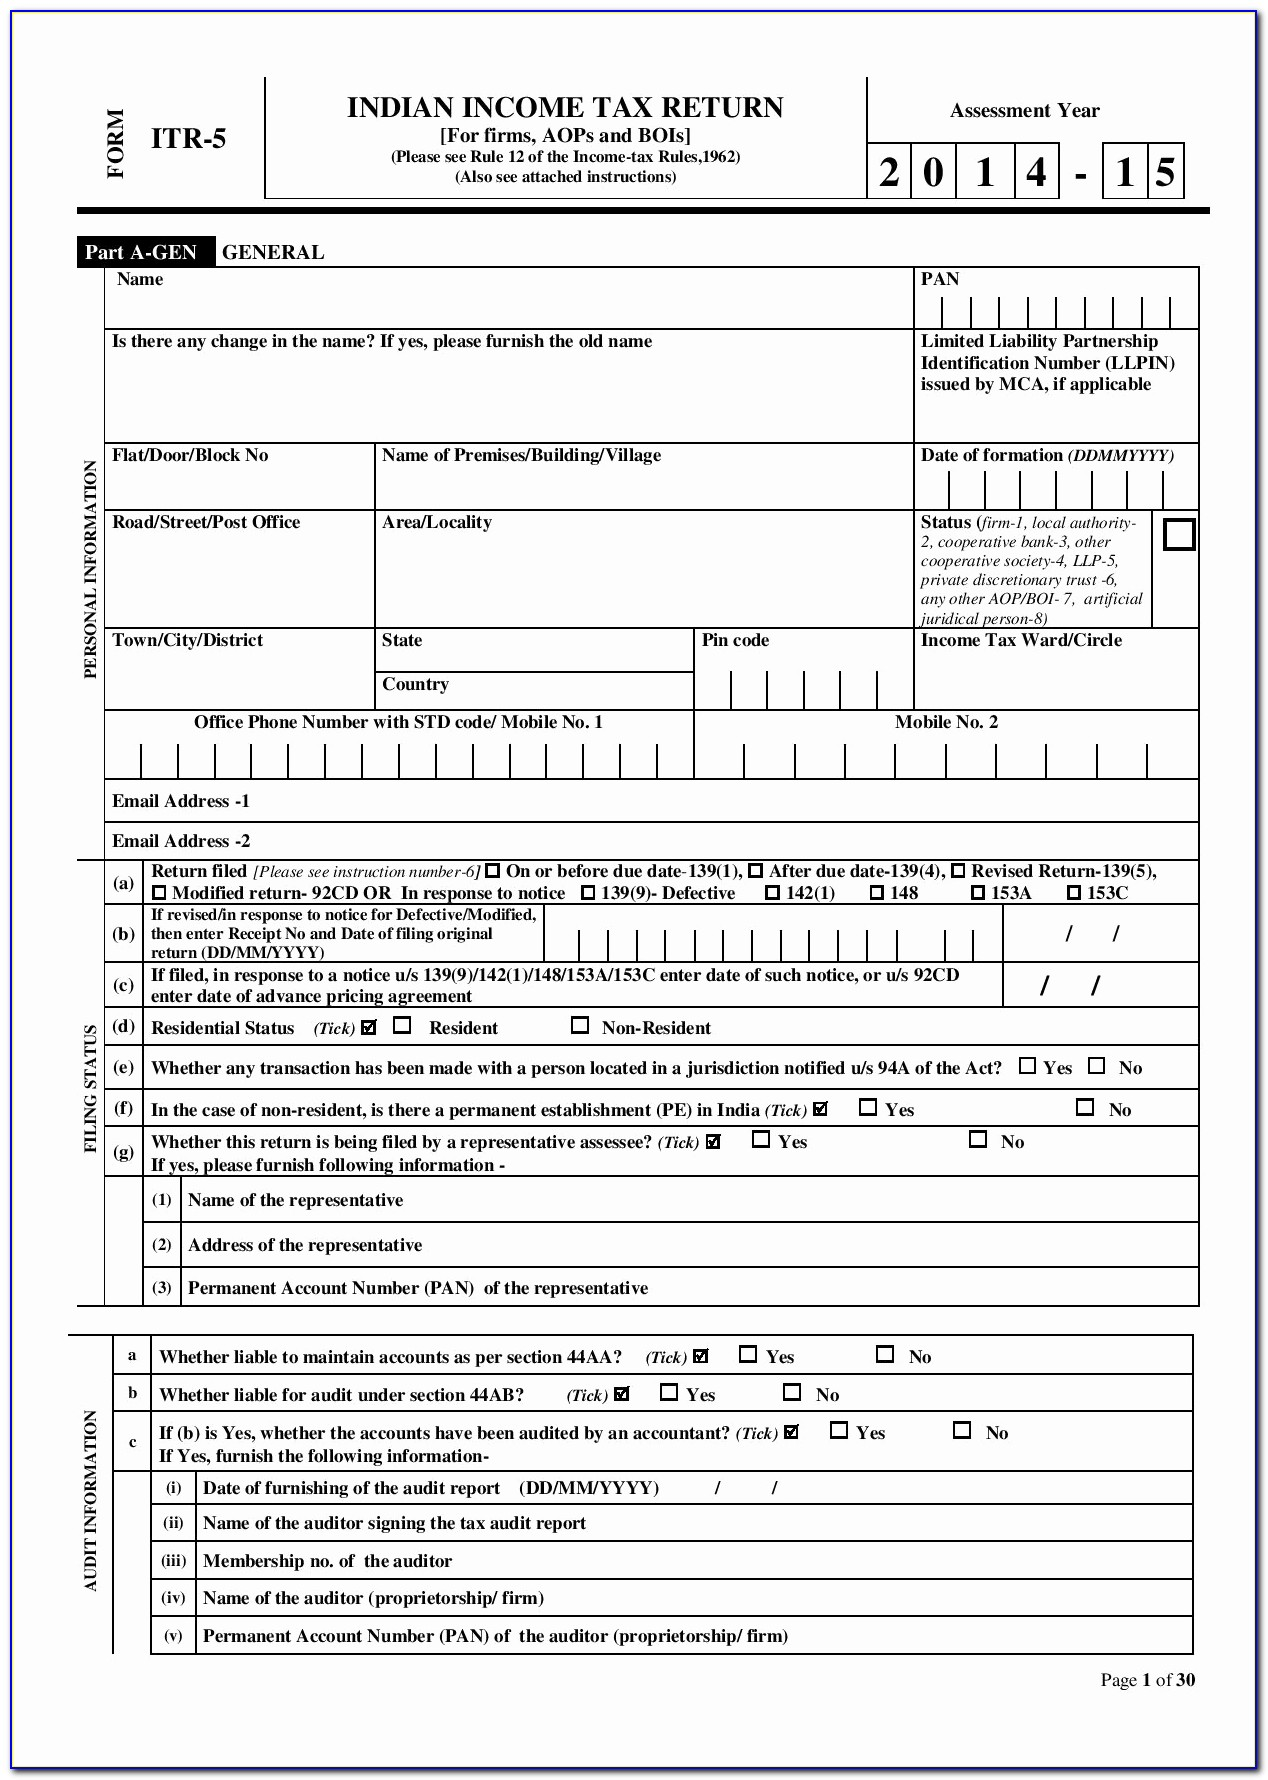 2011 Federal Income Tax Forms And Instructions Luxury 1040ez 2011 Fillable Form 1 Free Sample Here Ohio Irs